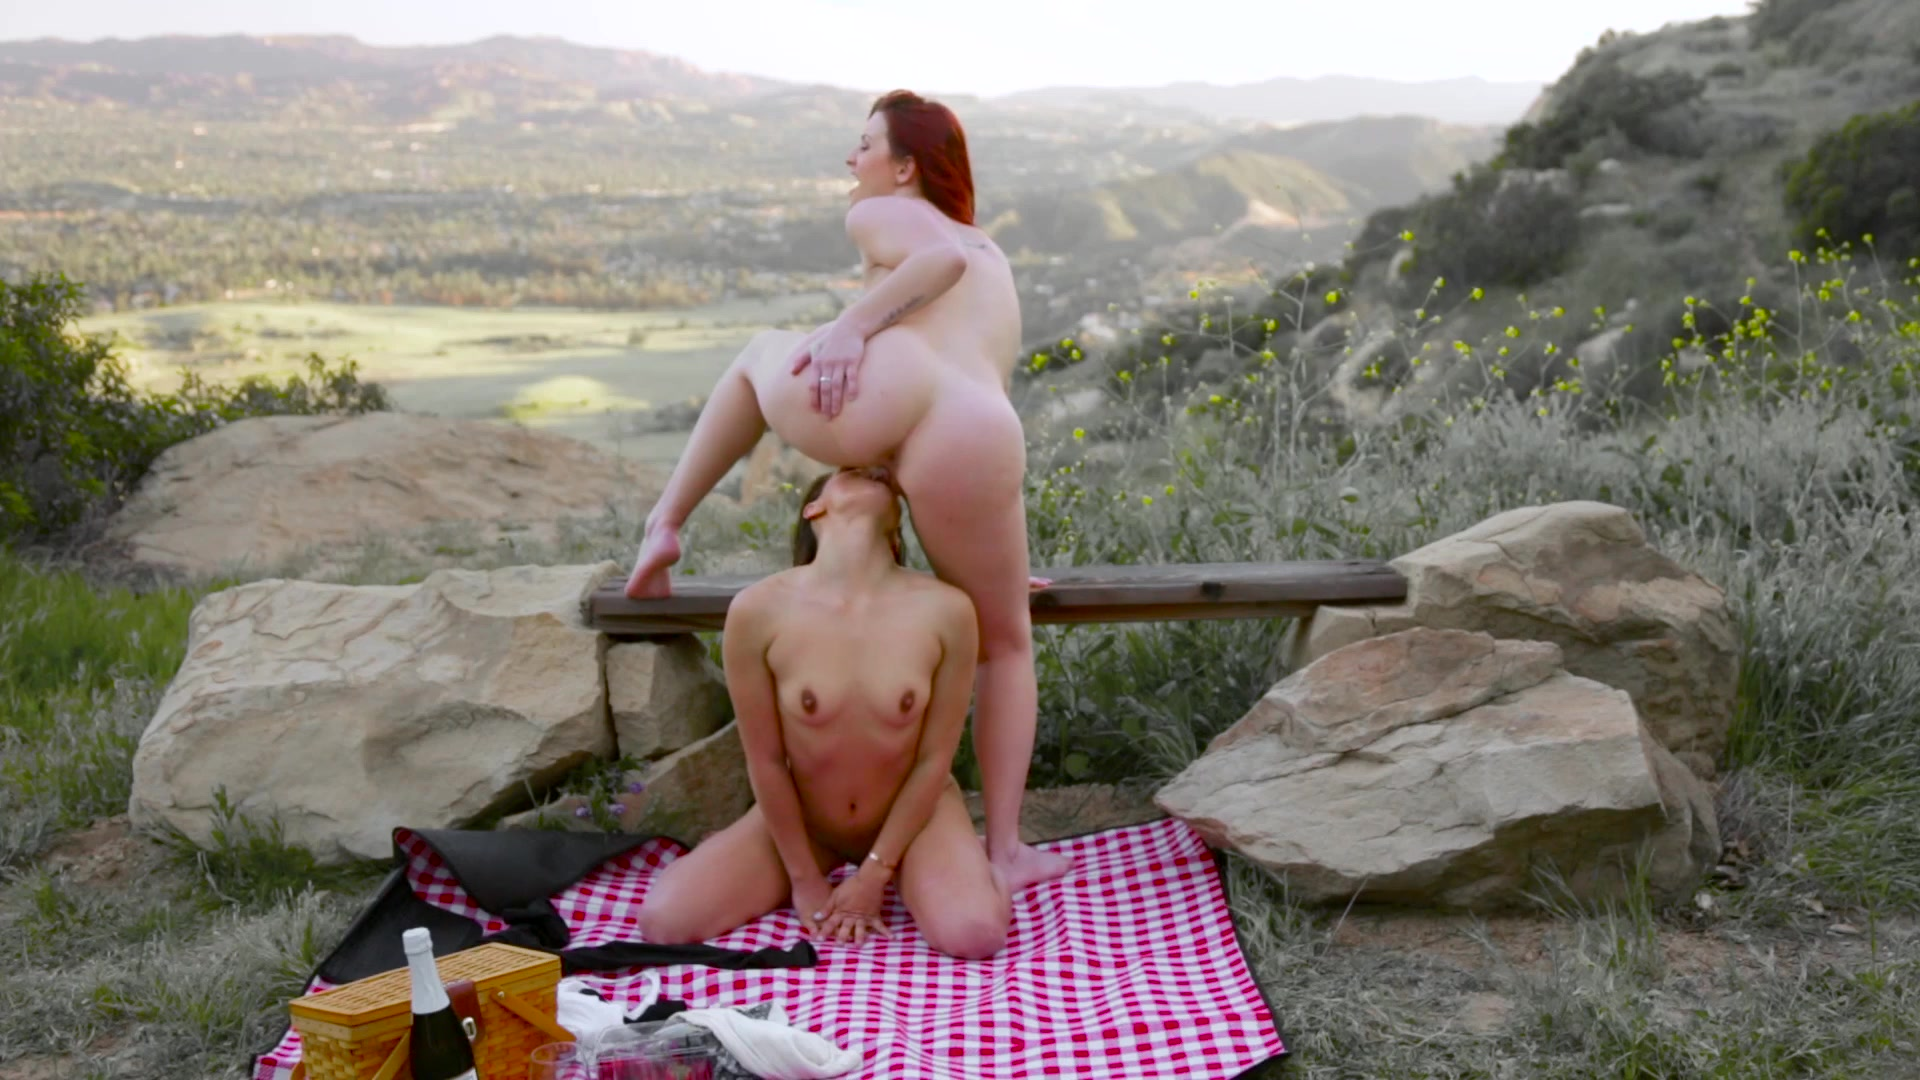 Scene with Karlie Montana and Sara Luvv - image 19 out of 20